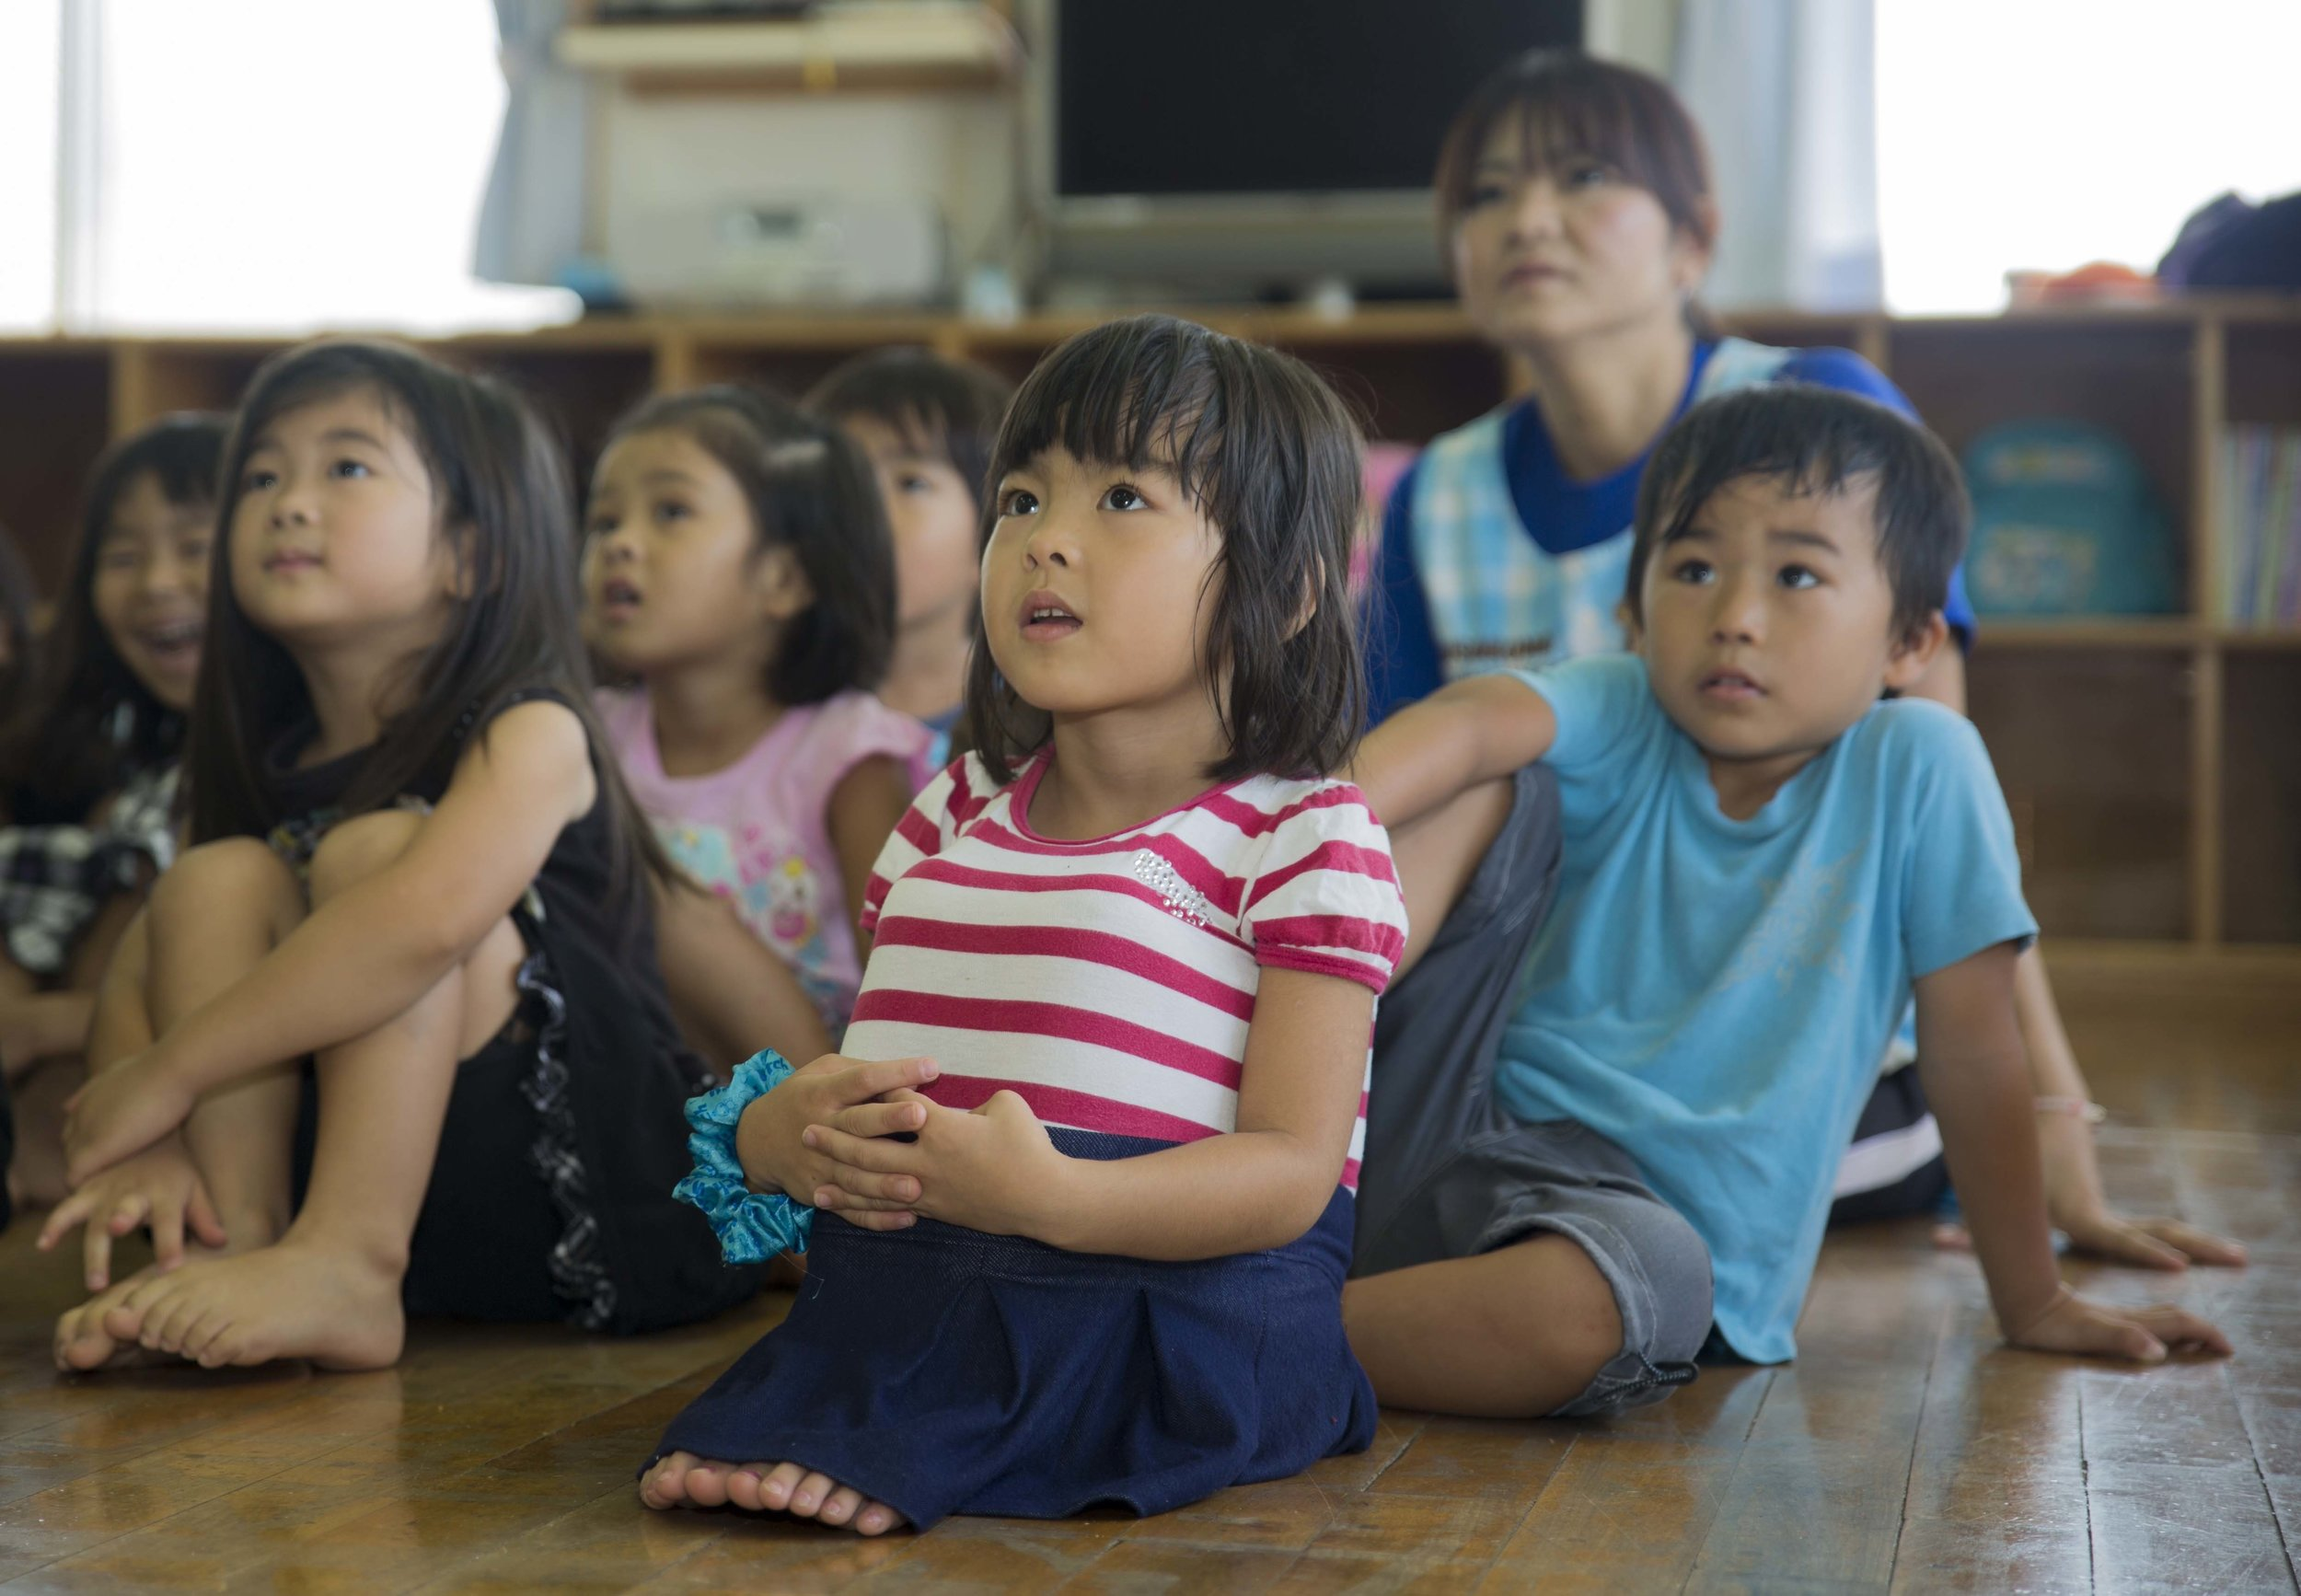 Marines_teach_English_to_Okinawa_students_through_song,_play_during_new_program_140919-M-PJ295-339.jpg